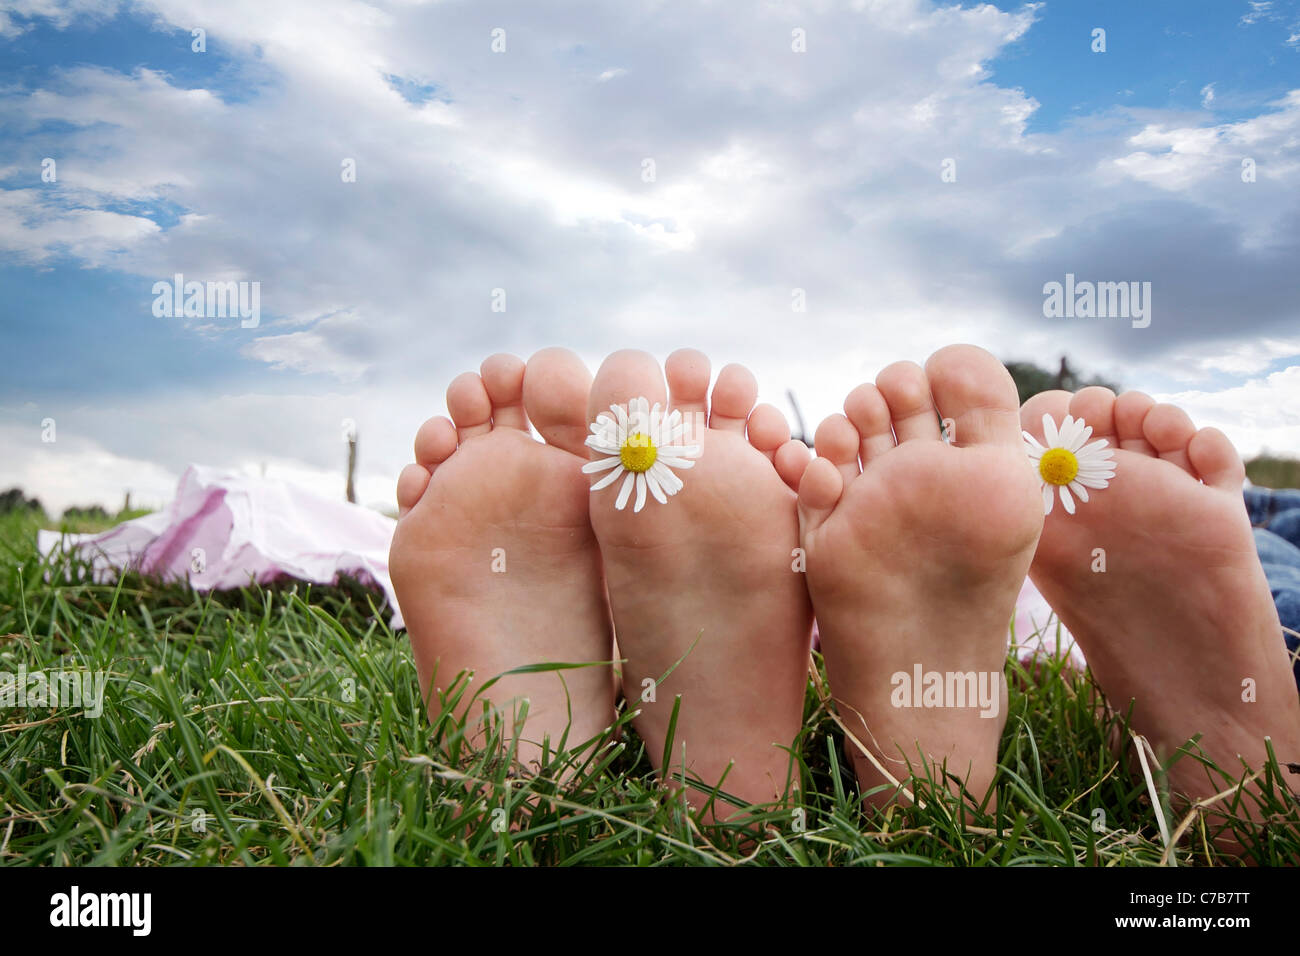 Children playing and relaxing on a meadow in summer, barefoot, Eyendorf, Lower Saxony, Germany, Europe - Stock Image